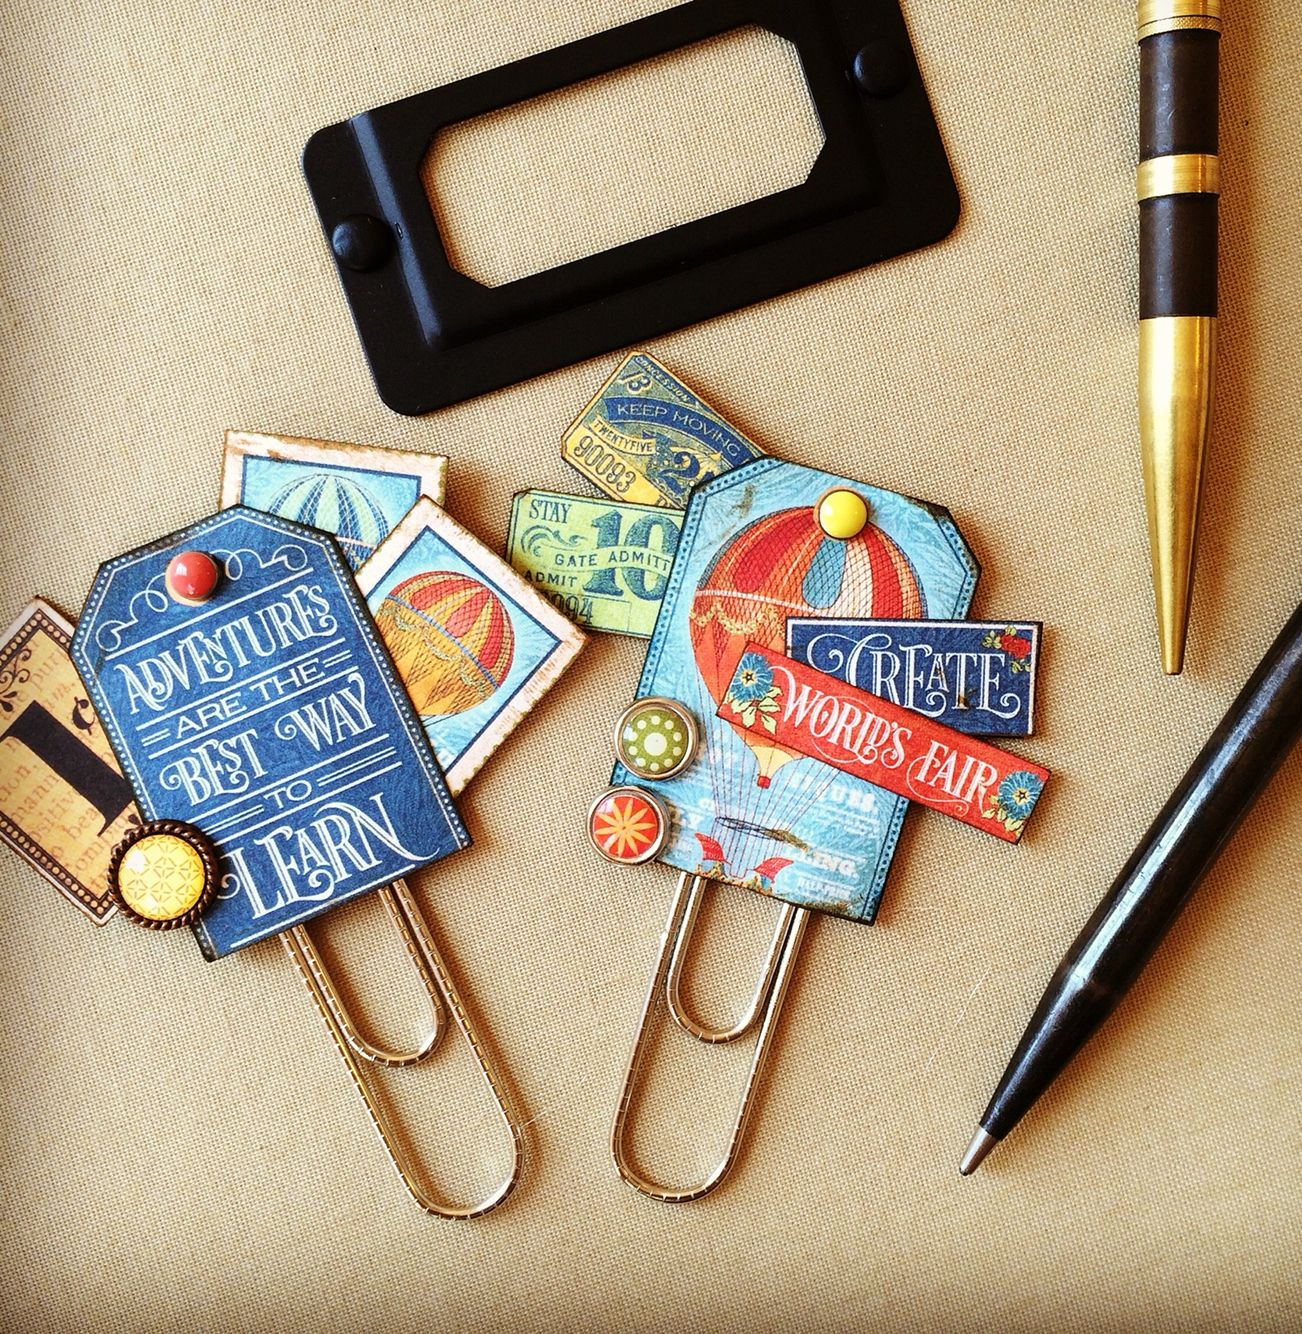 Planner Clips Filofax Journaling Embellishments By Jackie Benedict Paperclip Crafts Paper Clip Art Card Embellishments